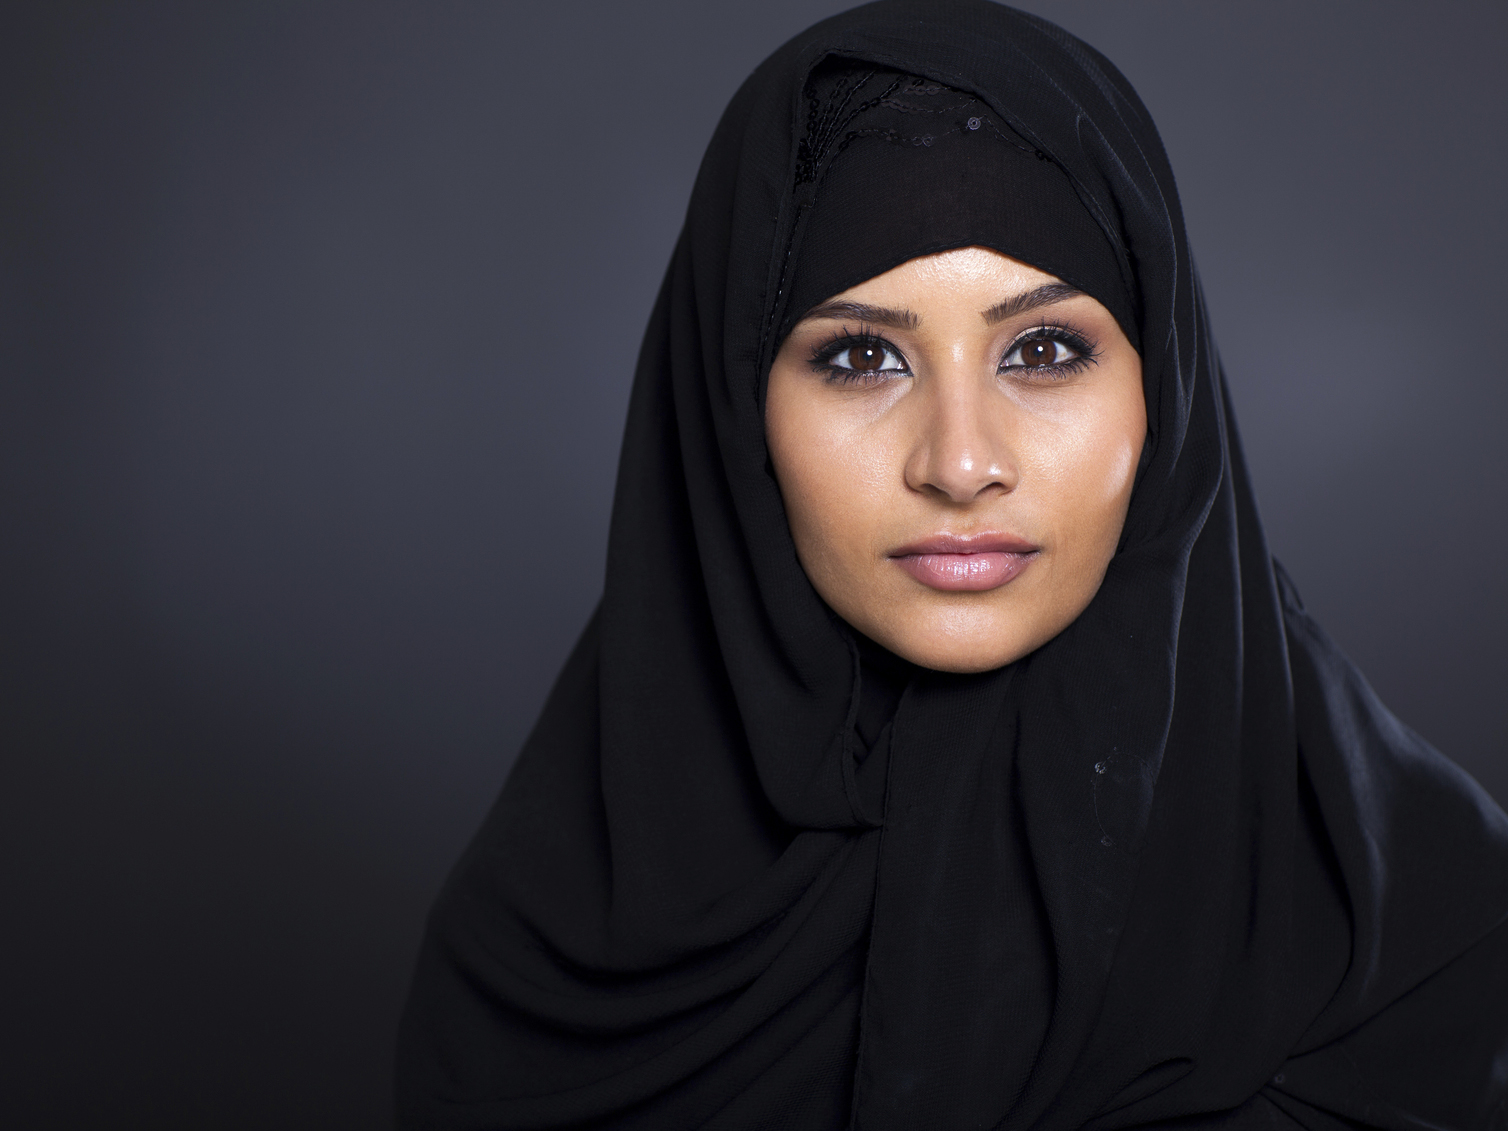 You must know the history behind Hijab in Islam before commenting anything